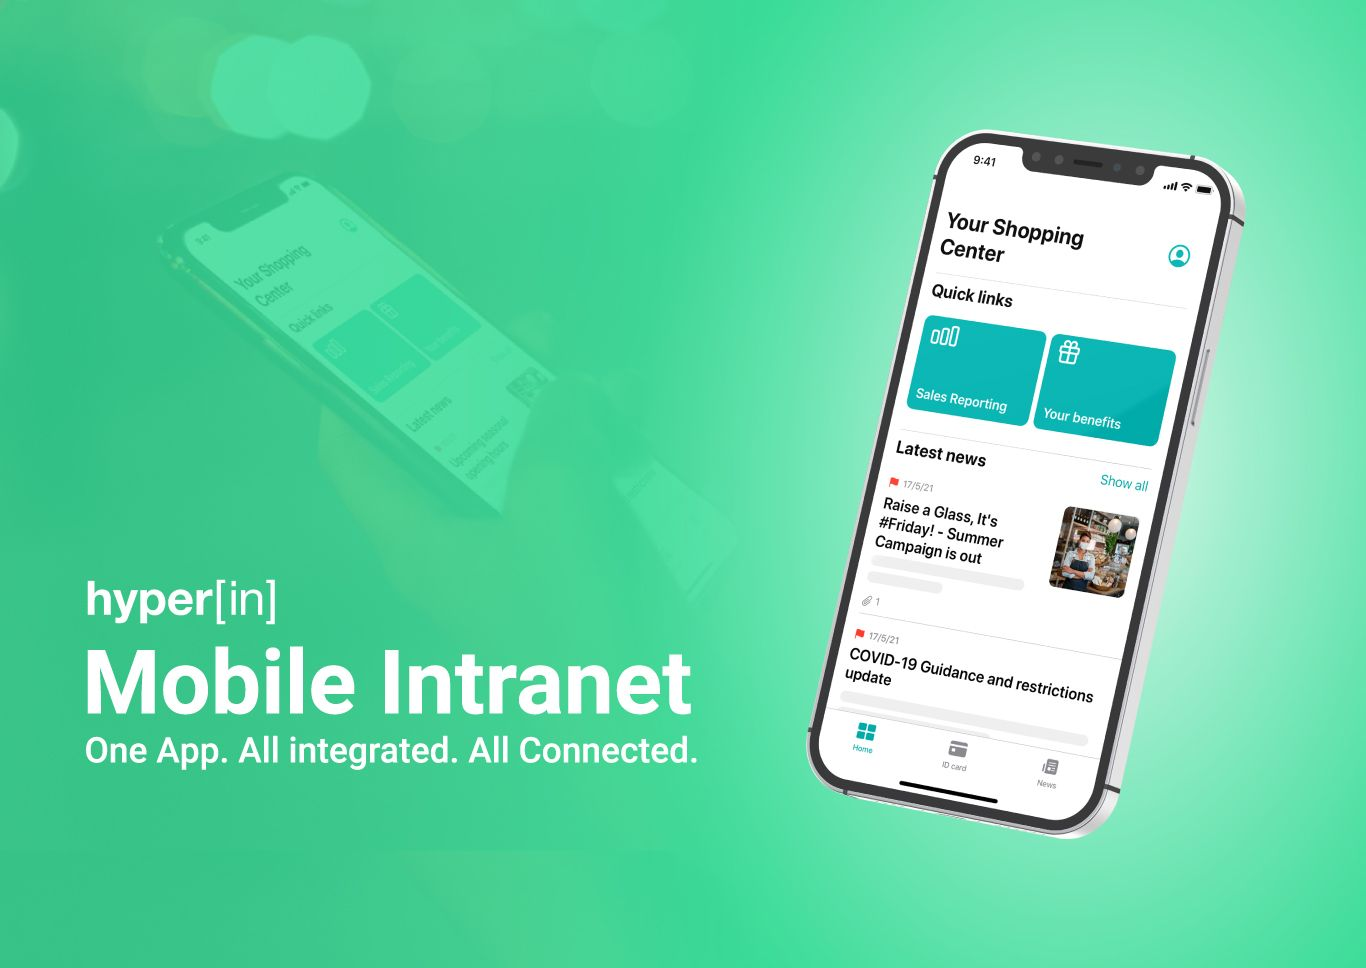 The New HyperIn Mobile Intranet App brings the digital workplace to your fingertips.